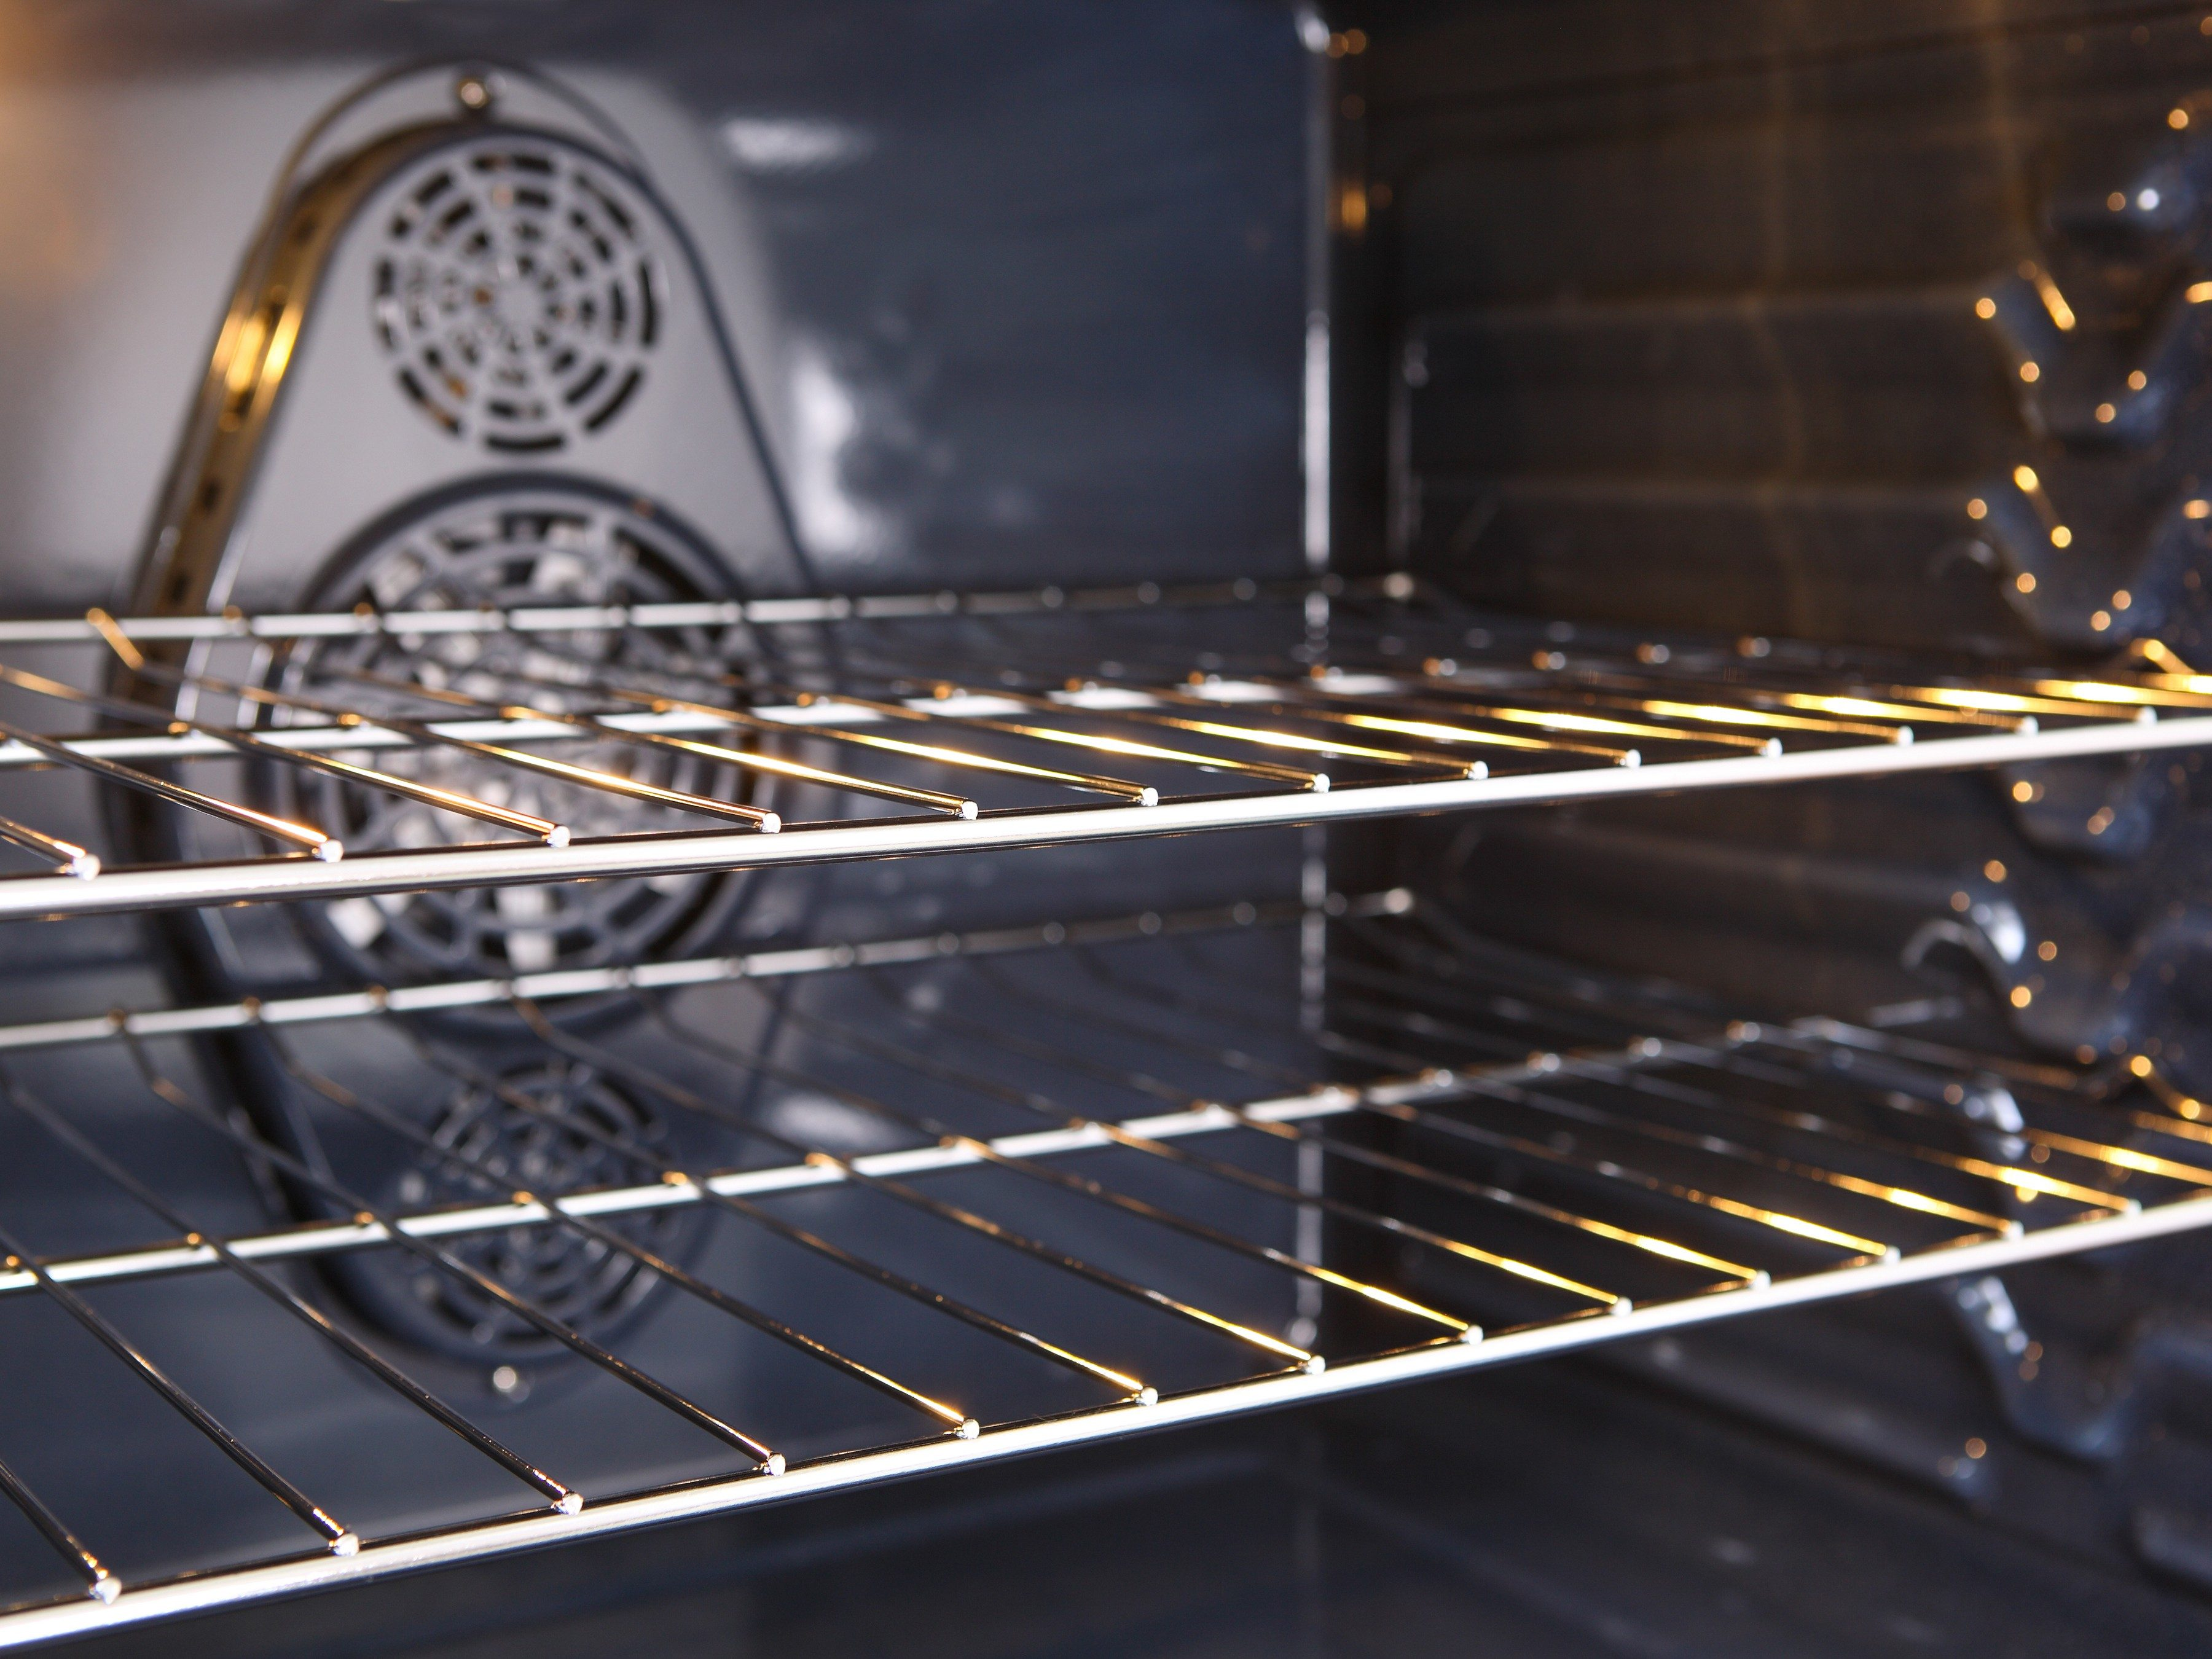 How to Clean Dirty Oven Racks